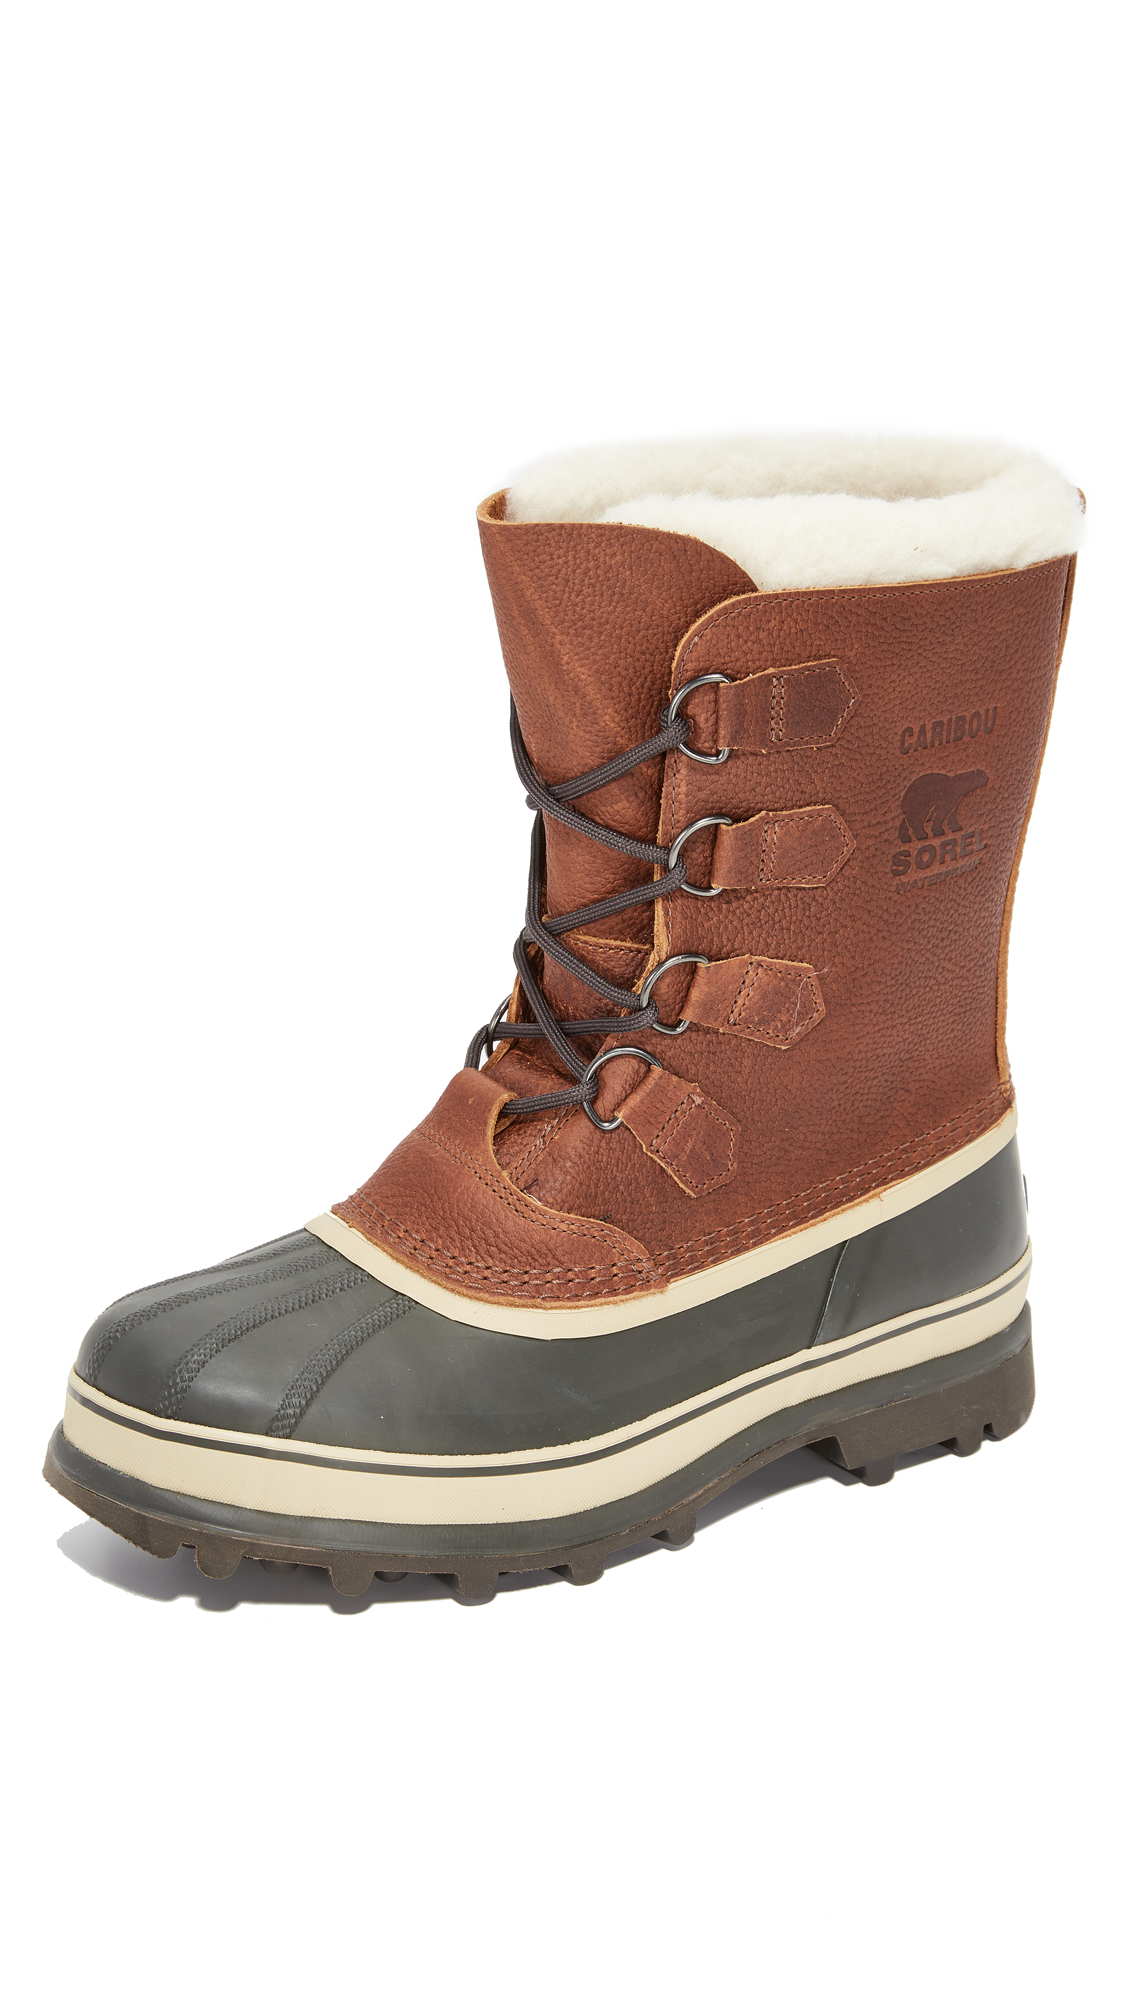 24c0b0305ff Caribou Wl Boots in Brown